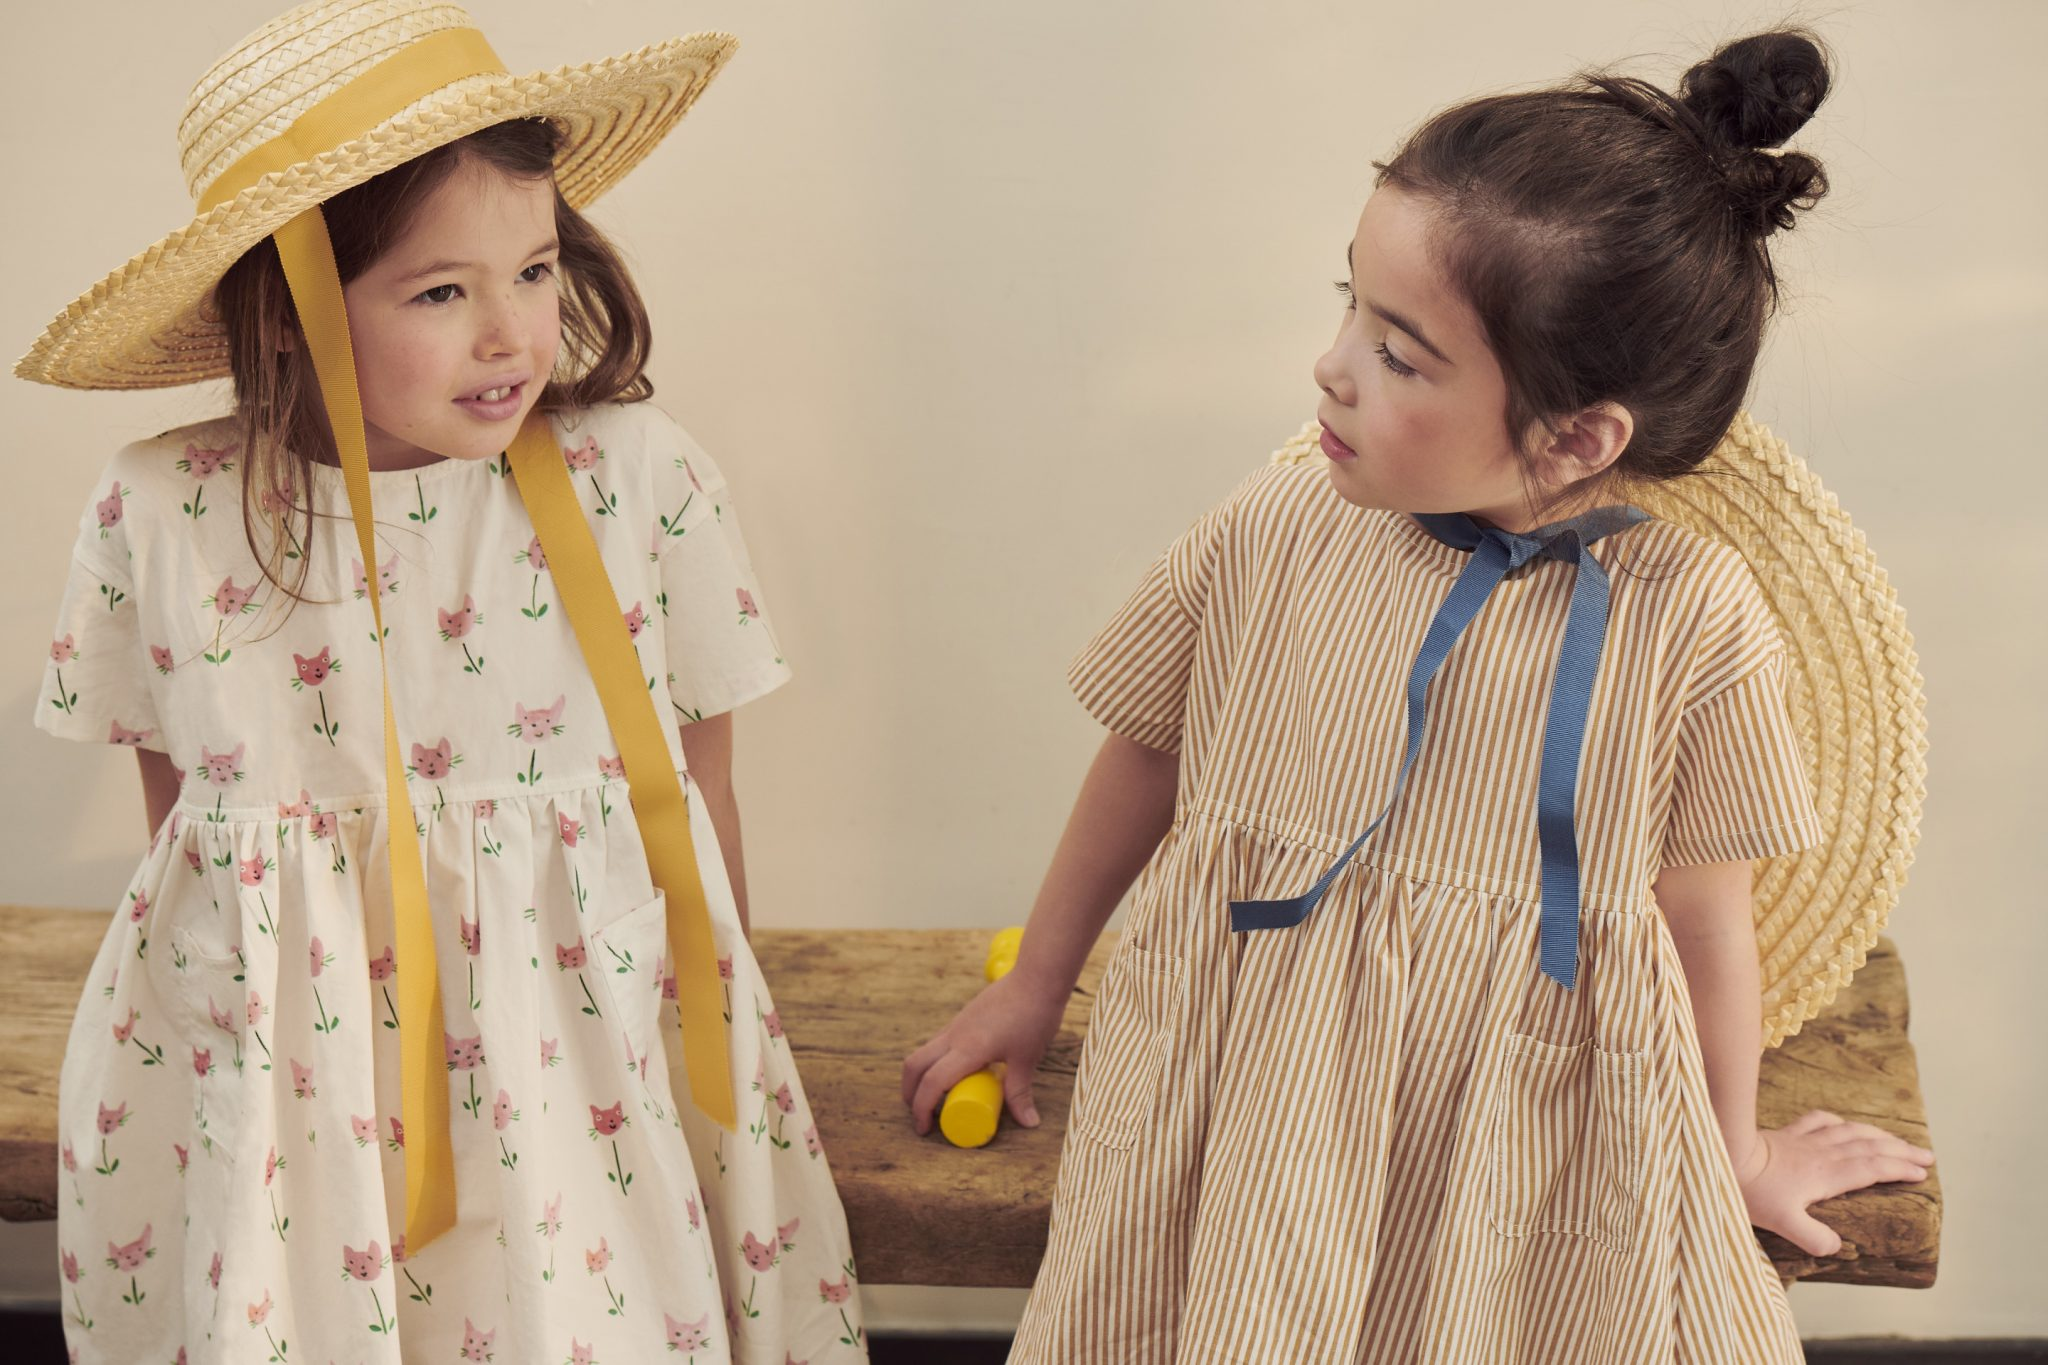 Maisonette_Maison-Mini-Collection-5 Fashion Favorite Maisonette Launches First In-House Clothing Collection for Children